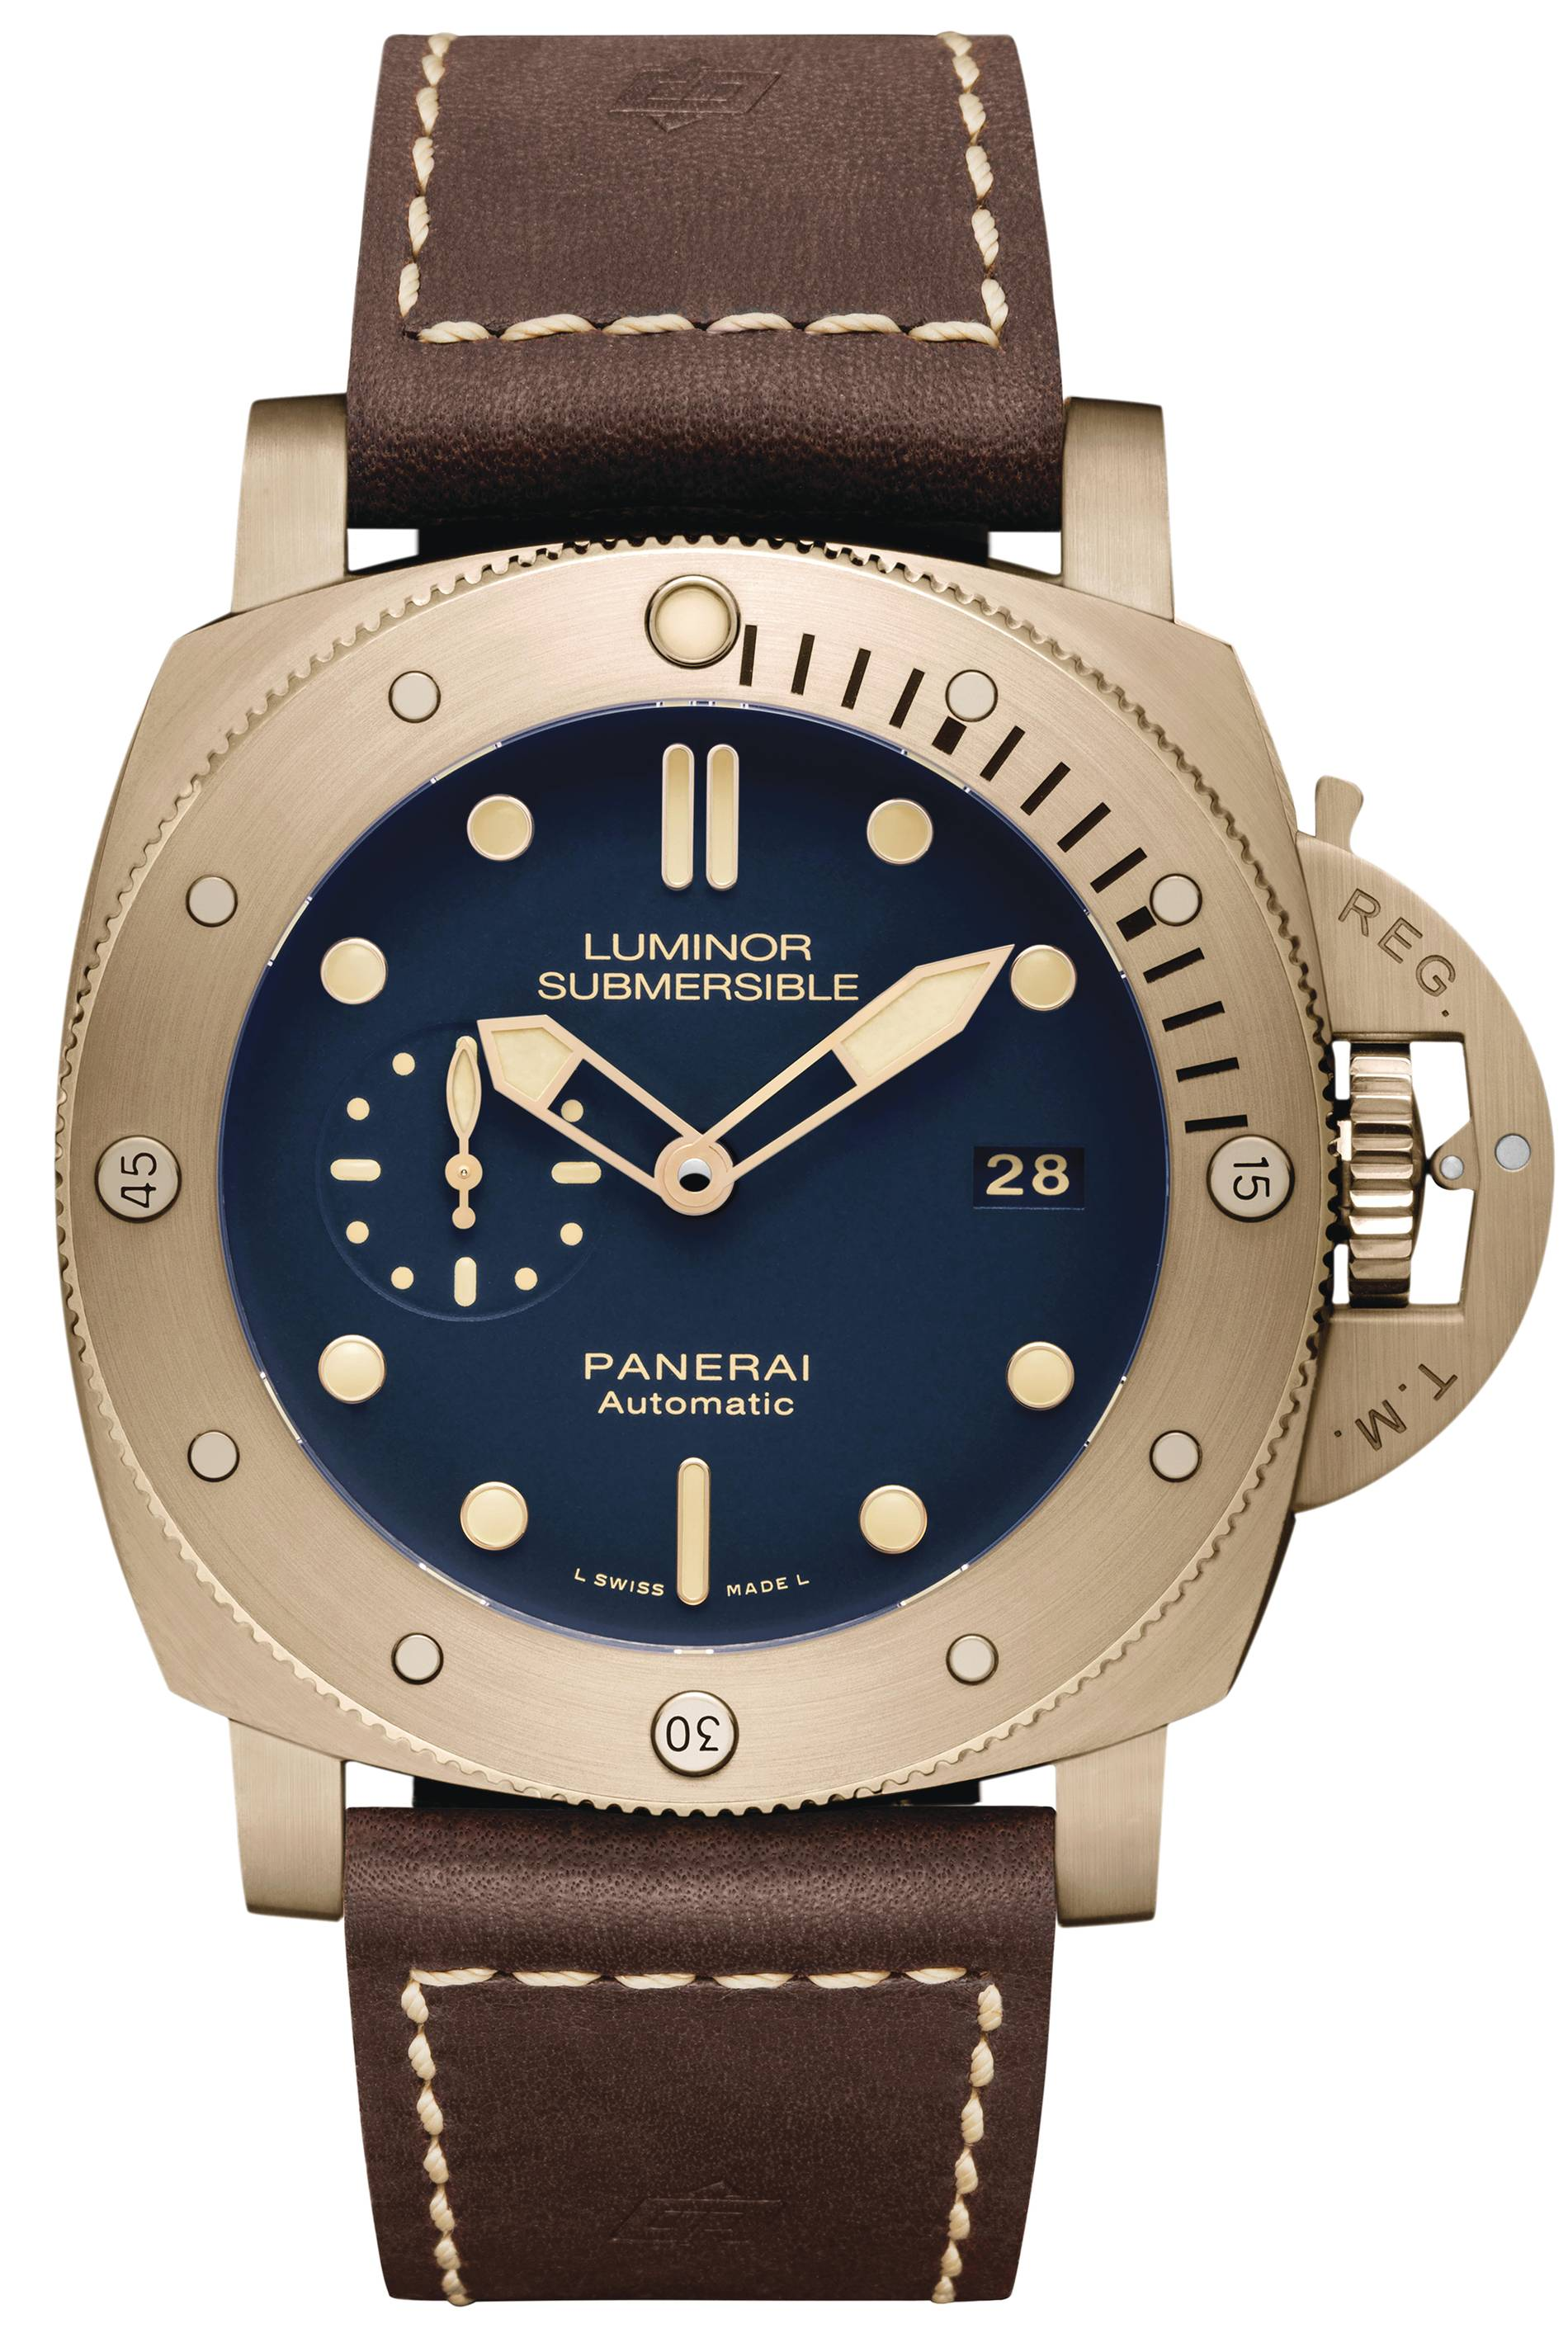 Panerai watch high res